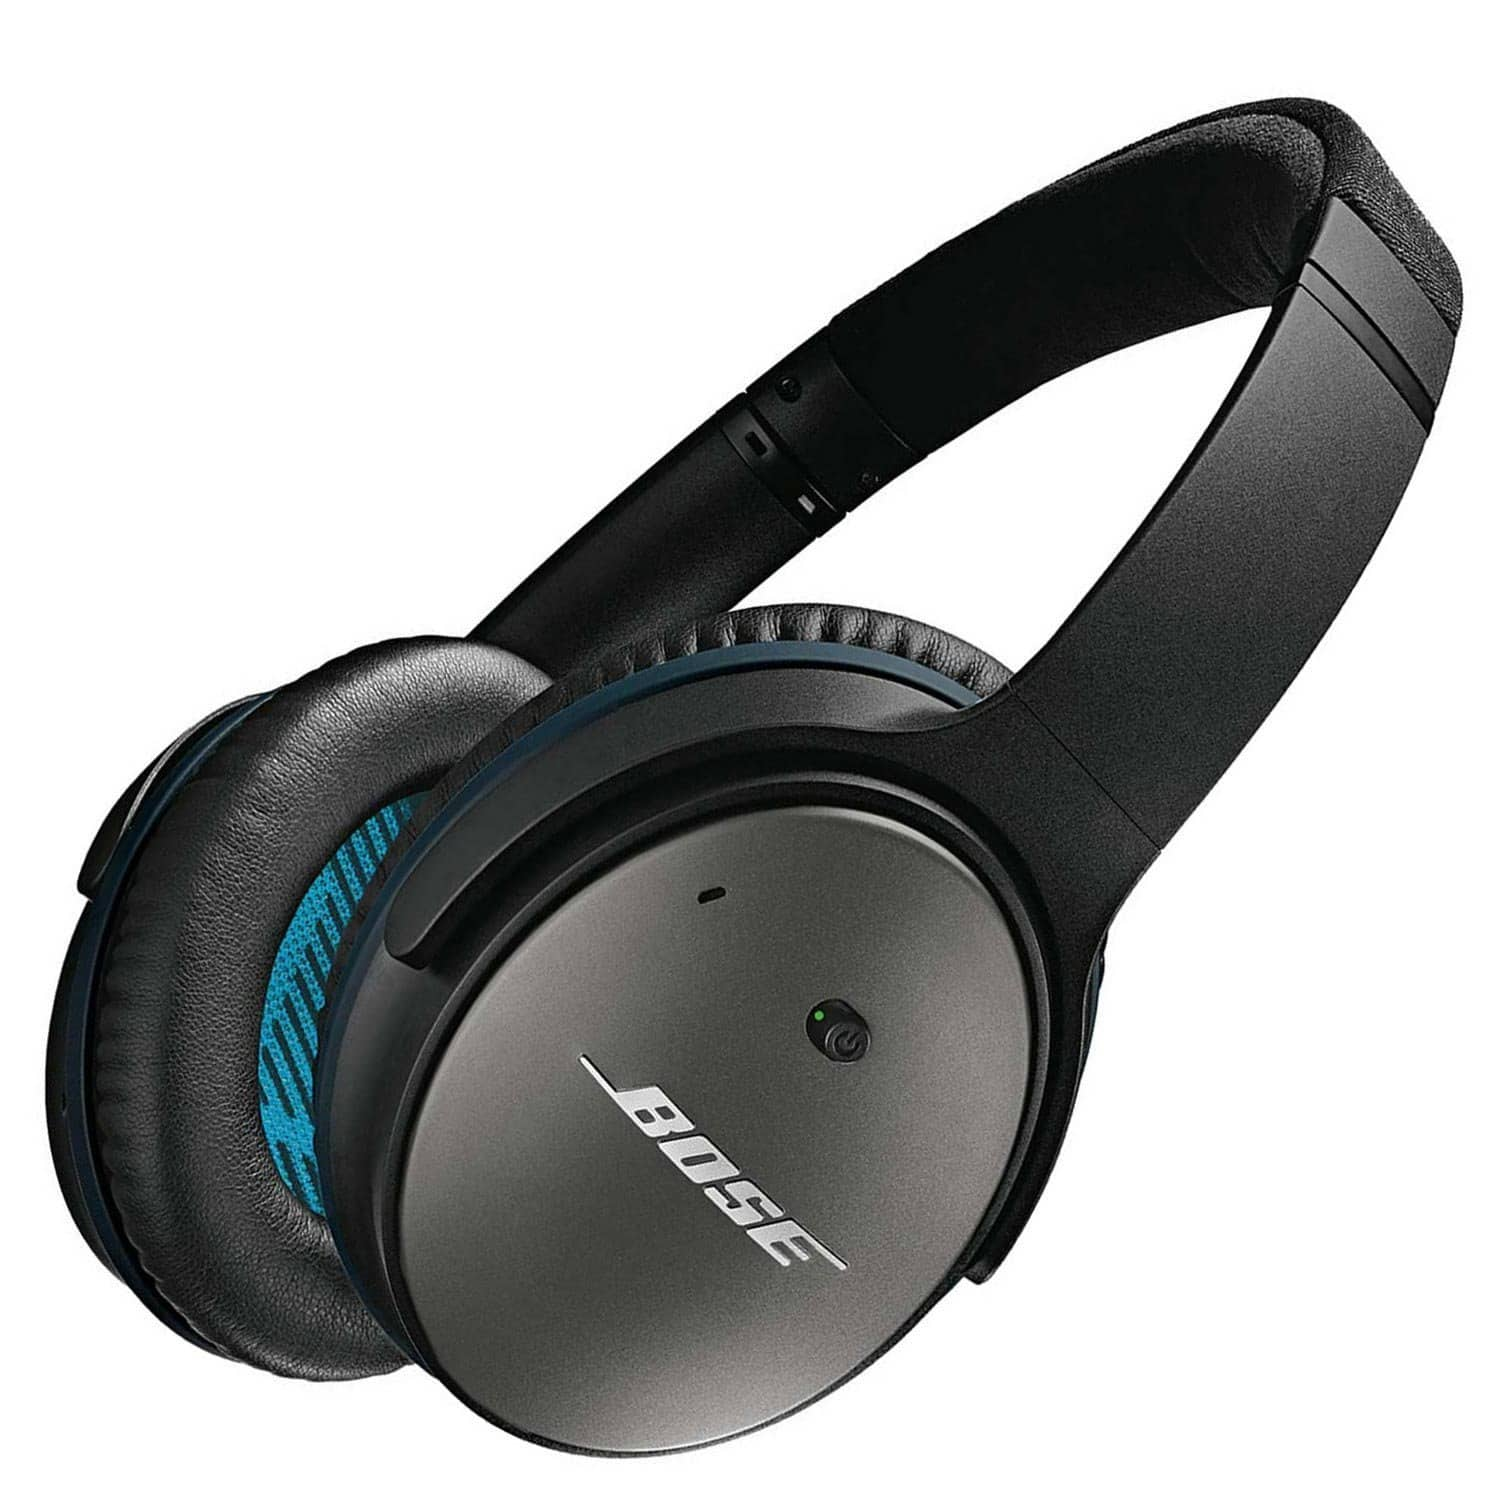 Bose QuietComfort 25 Noise Cancelling Headphones (Factory Refurb) $199.95 + Free Shipping @ Bose